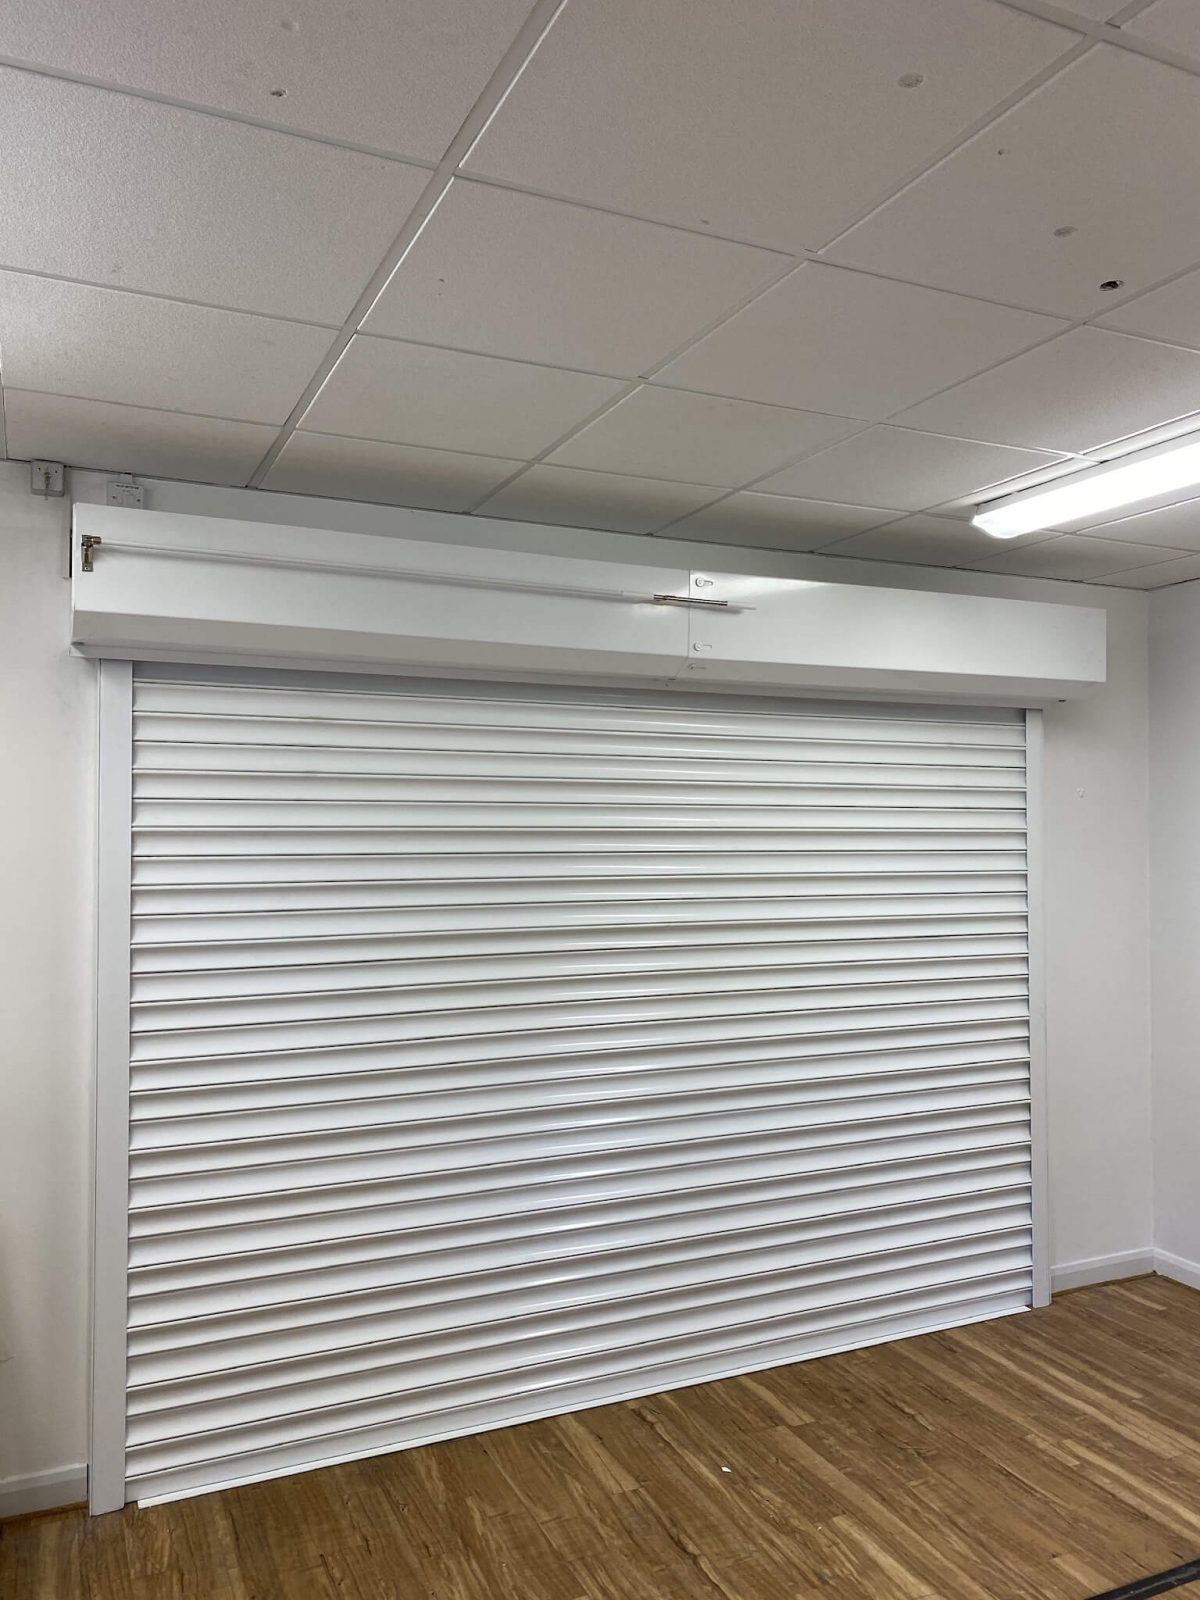 60min rated Fire shutter